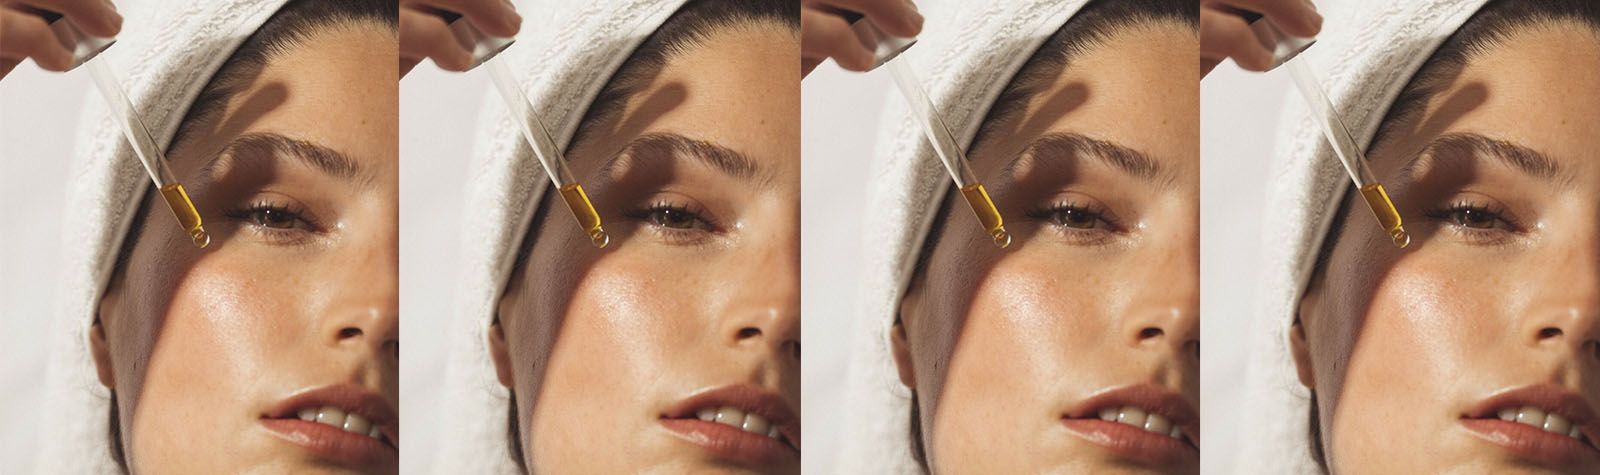 Town and Country · How To Master the Steps of the At-Home Facial